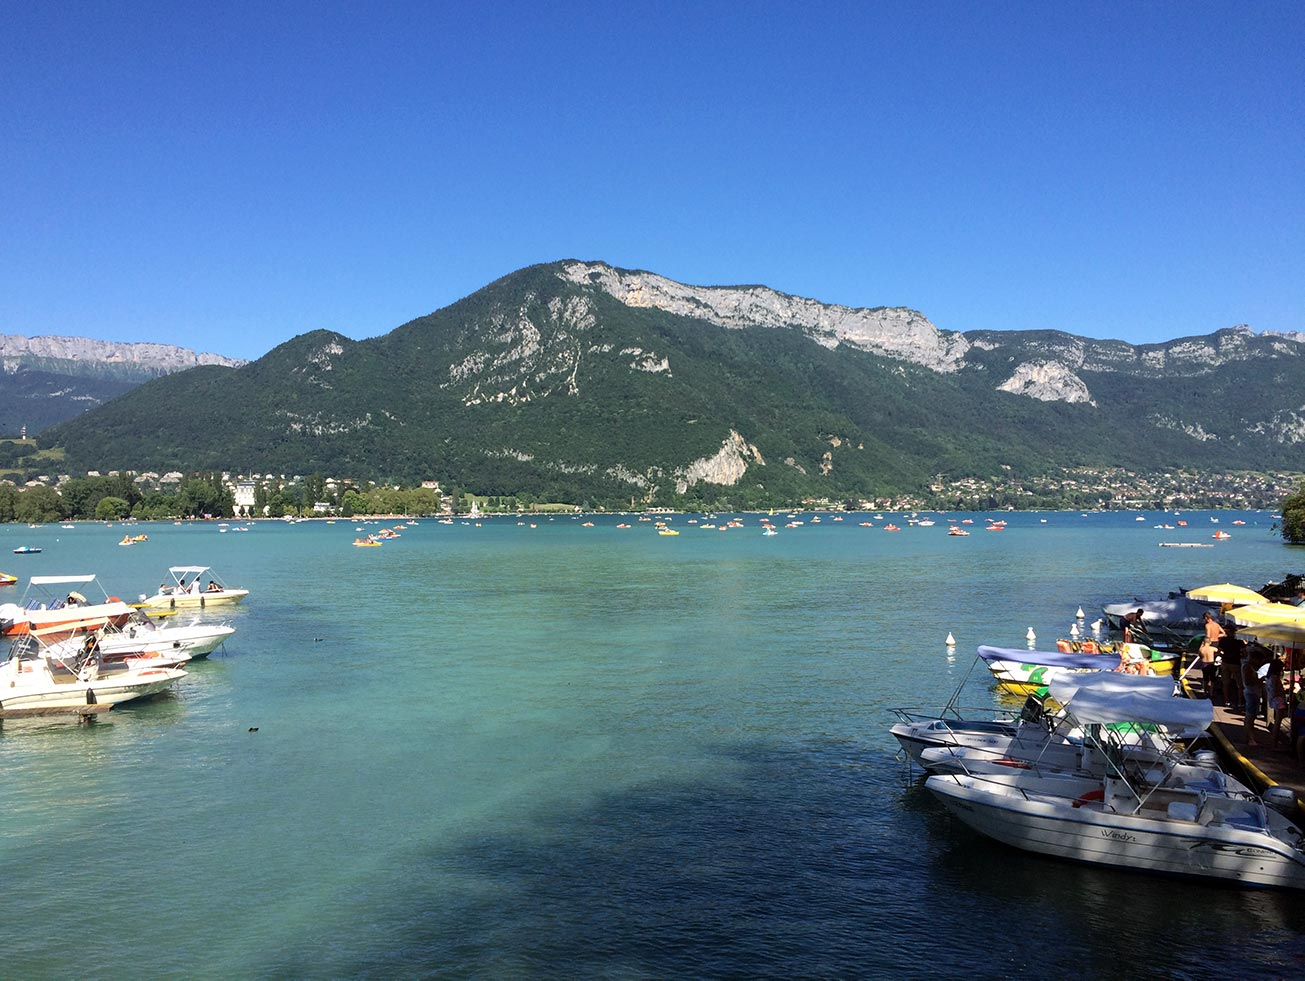 Lake Annecy with a mountain in the distance. There are boats docked and out on the water.